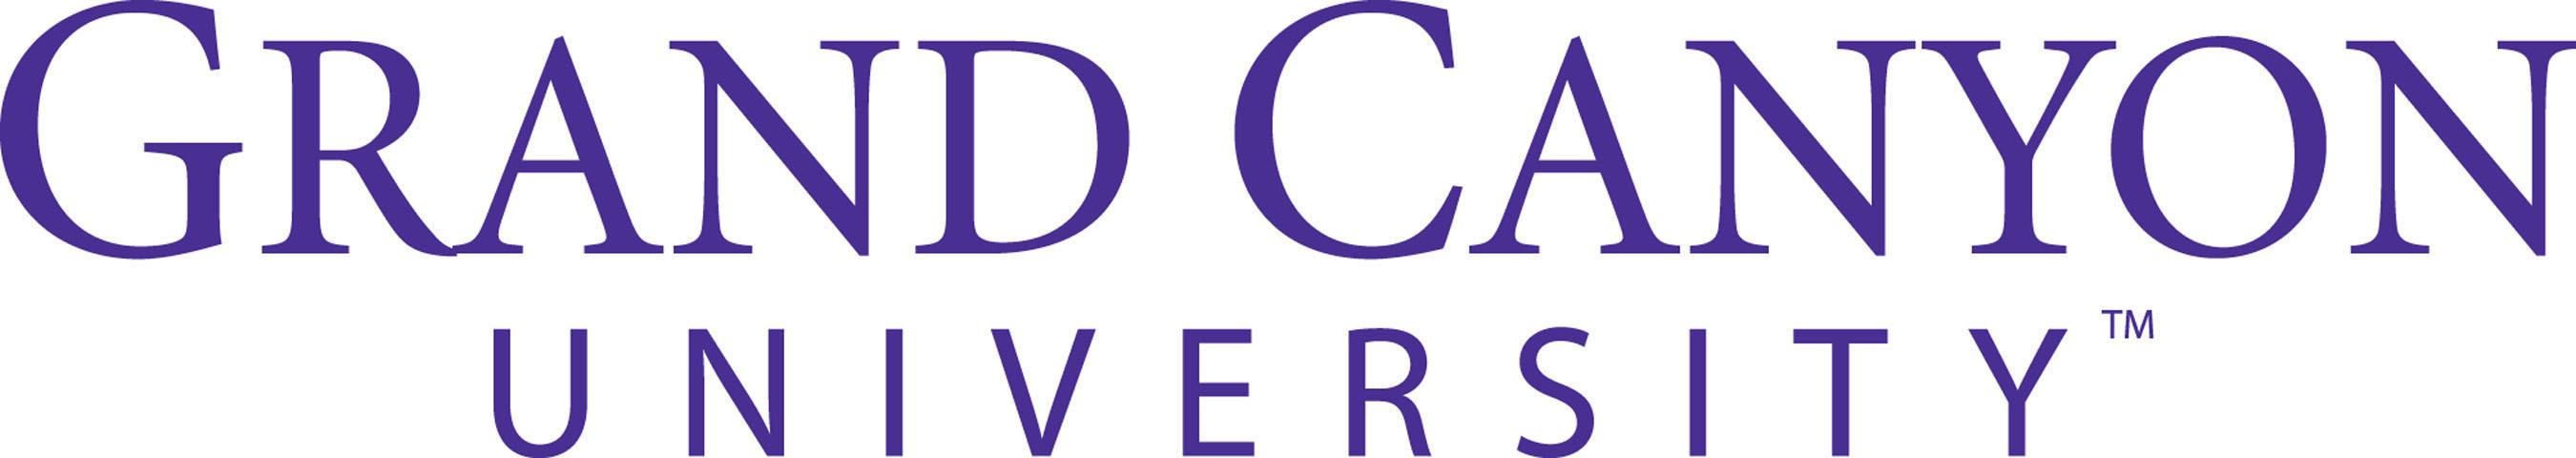 Grand Canyon University logo.